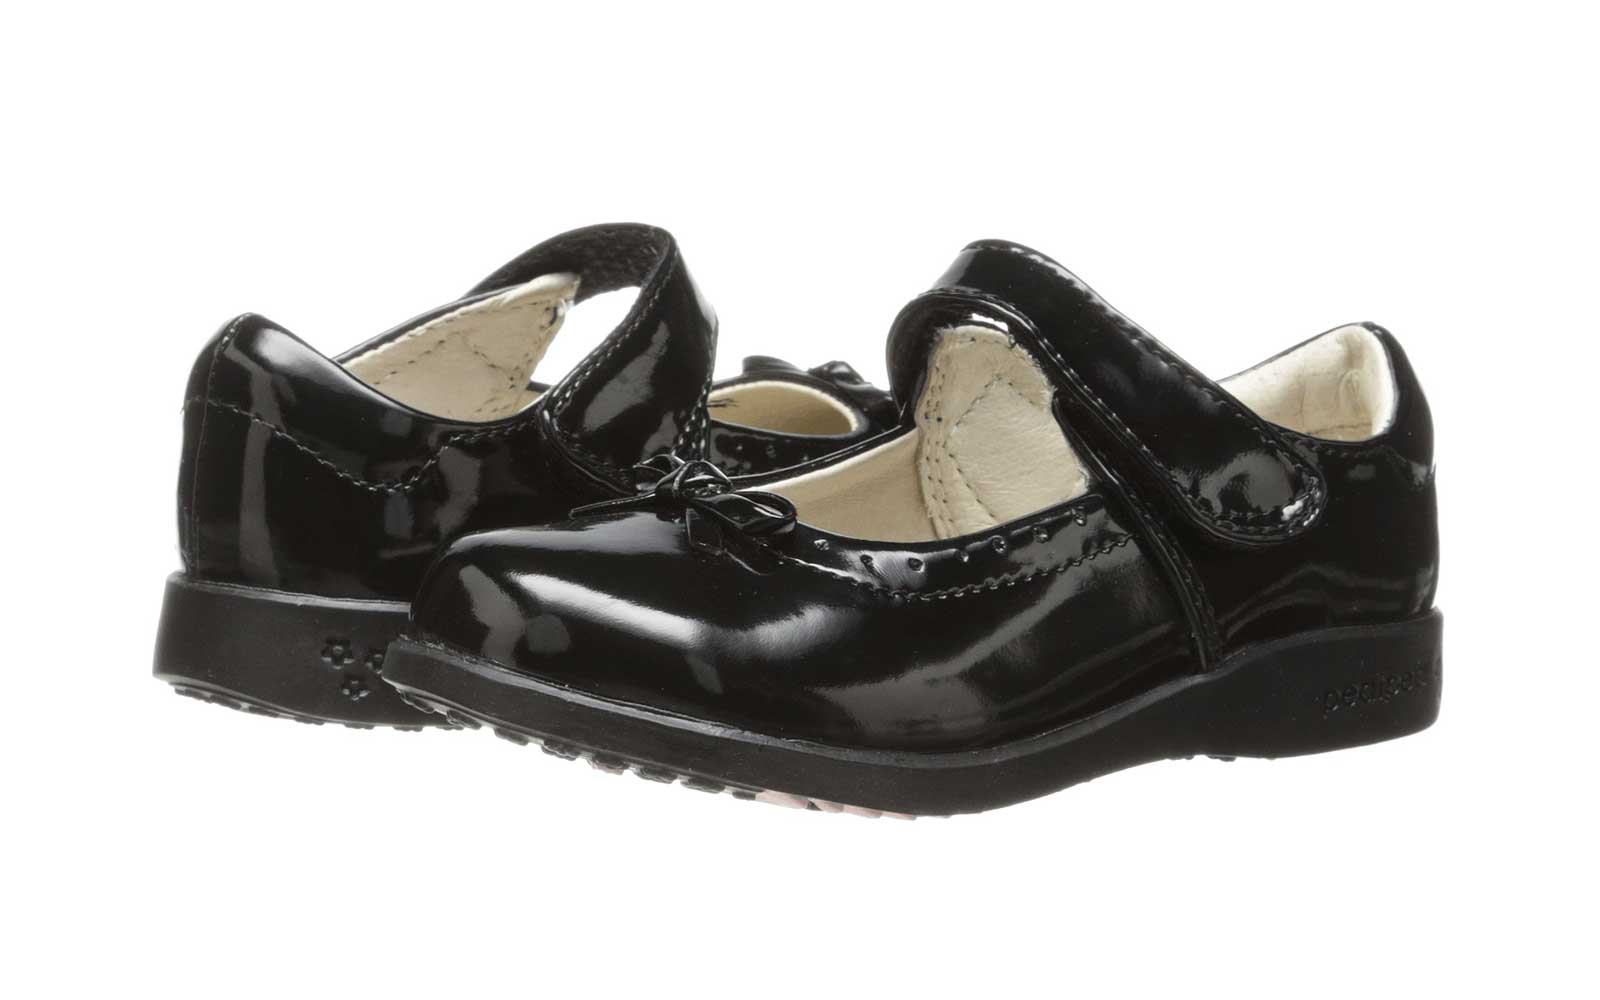 Pediped Isabella shoe